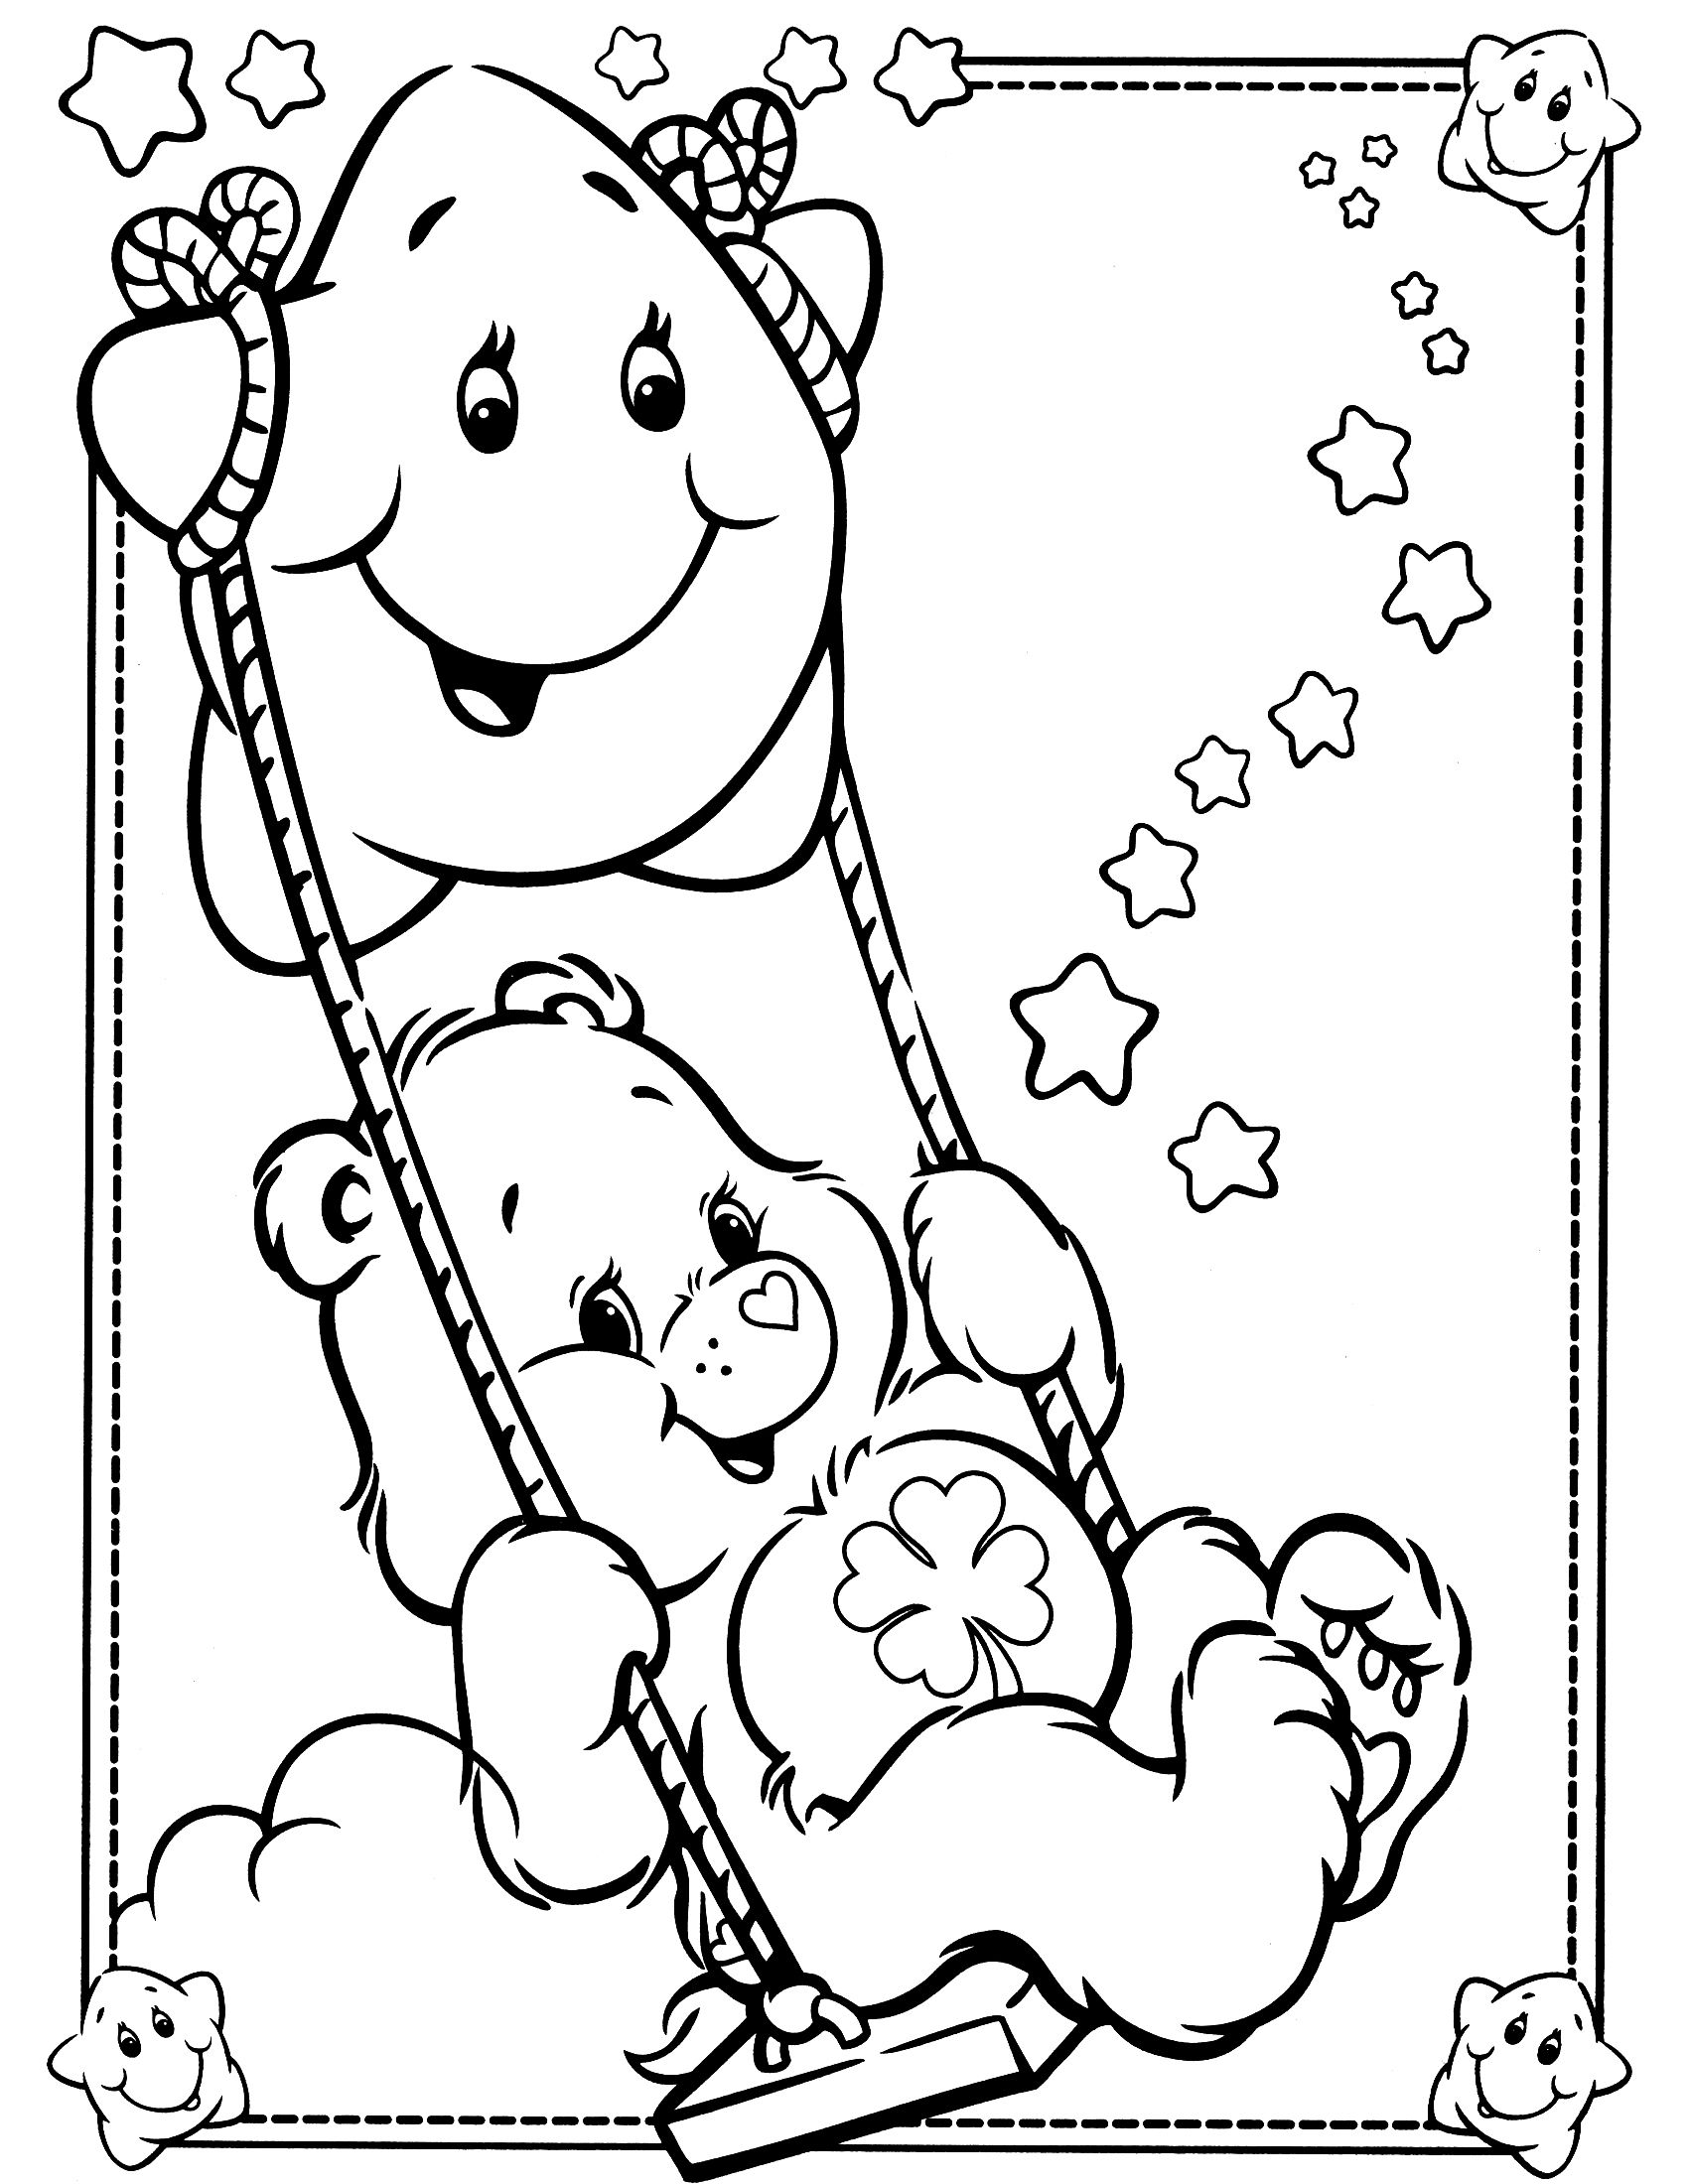 care+bears+coloring+pages Care Bears Coloring Page 29